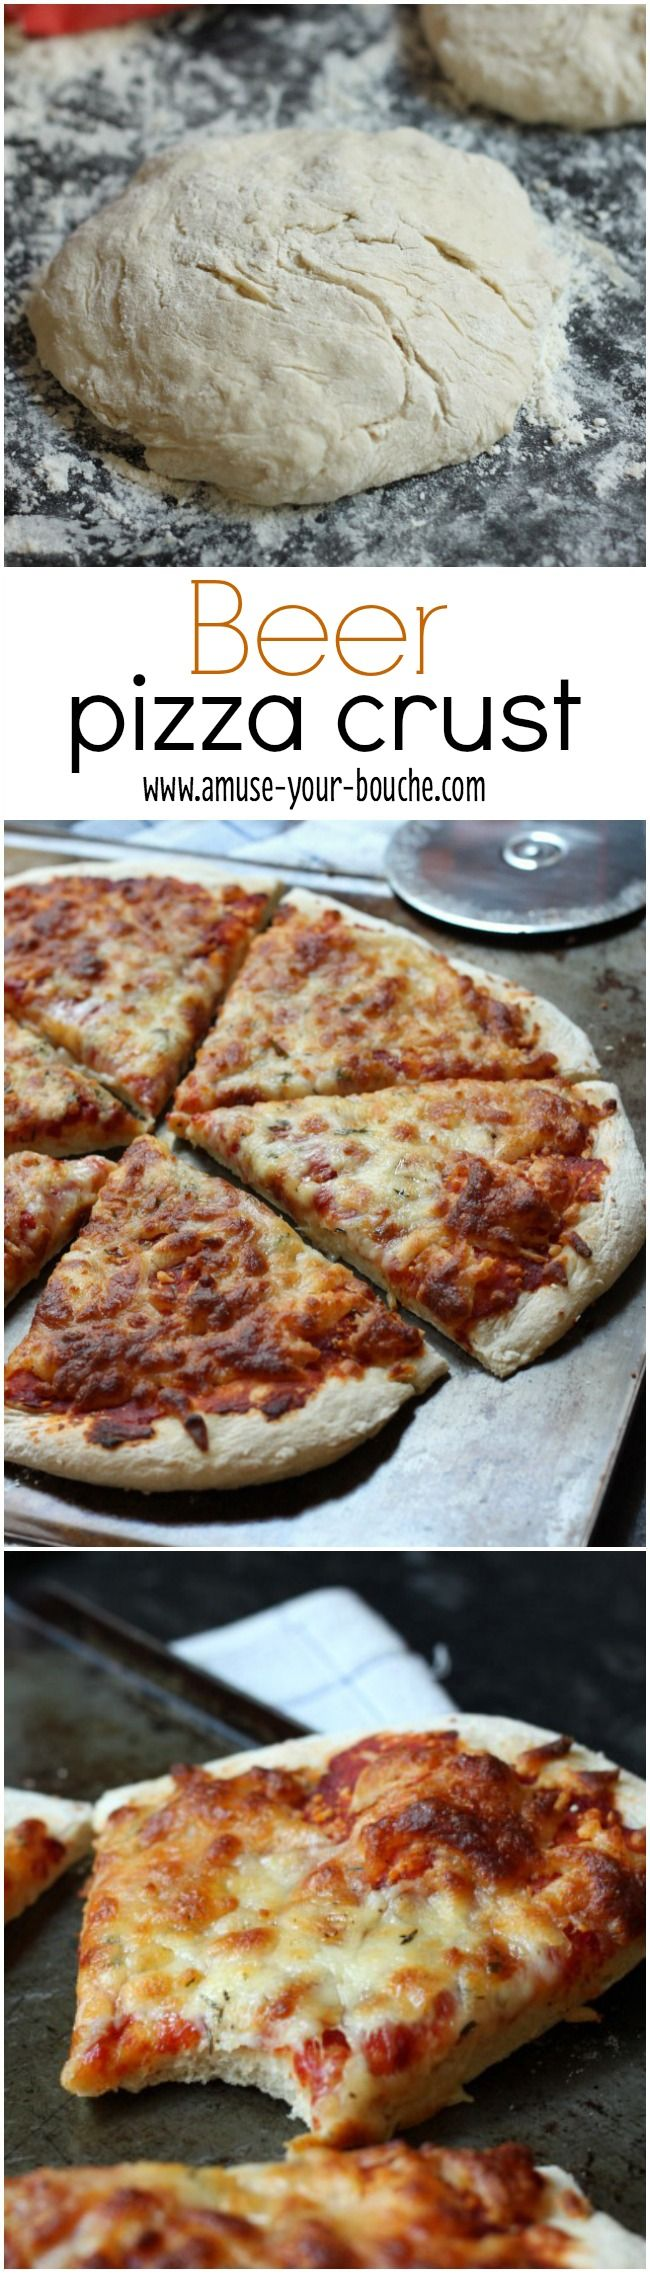 Beer pizza crust - a thin pizza crust that's really easy to make! And it contains beeeer!